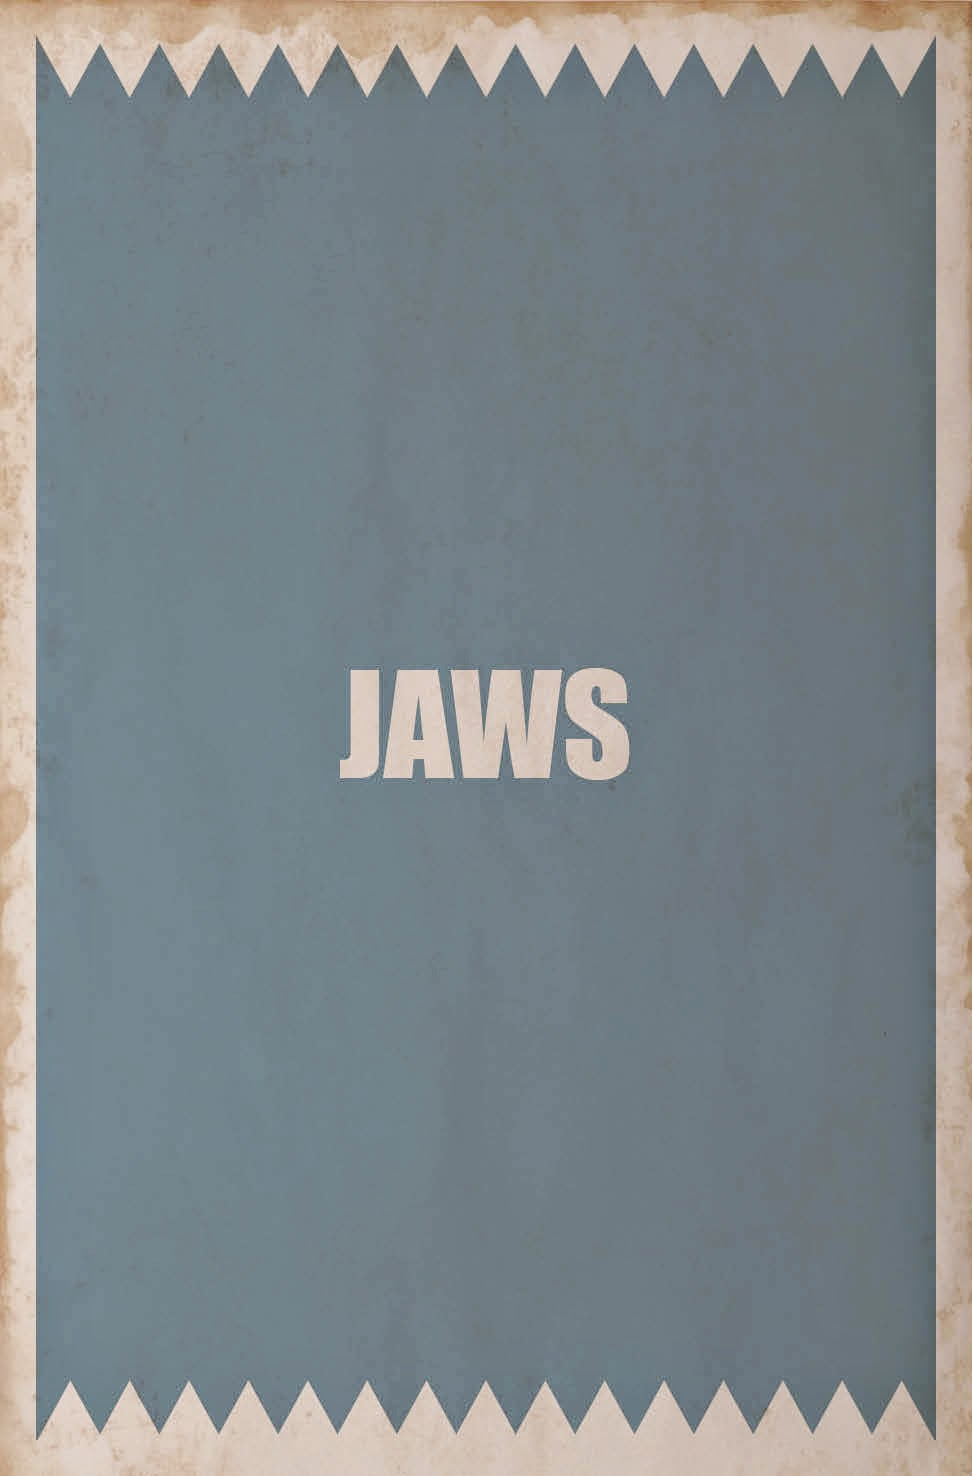 Minimalist Movie Posters Jaws